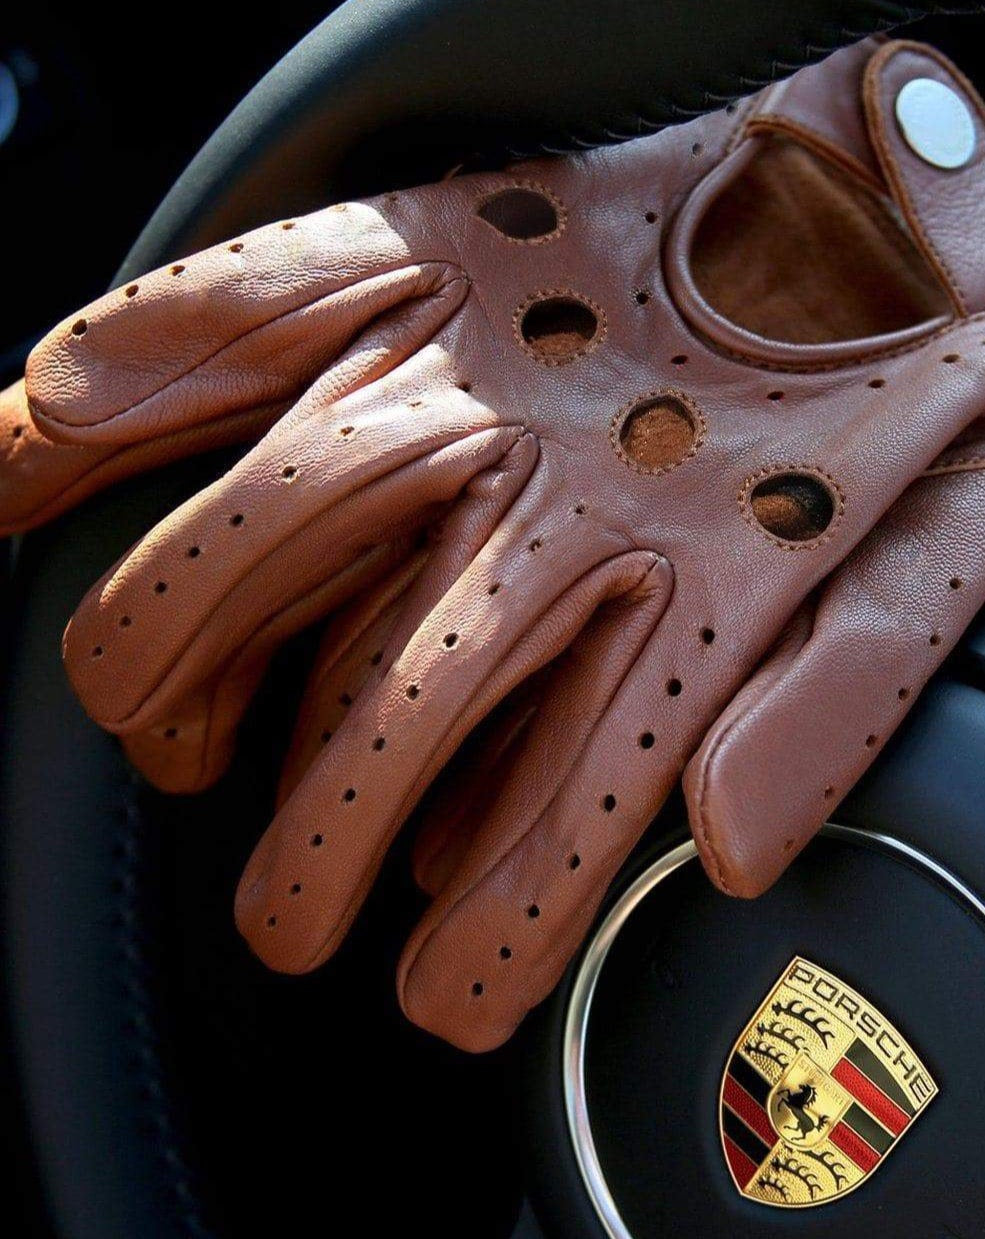 Brown Leather Driving Gloves with Knuckle Holes - Life in Paradigm Menswear London